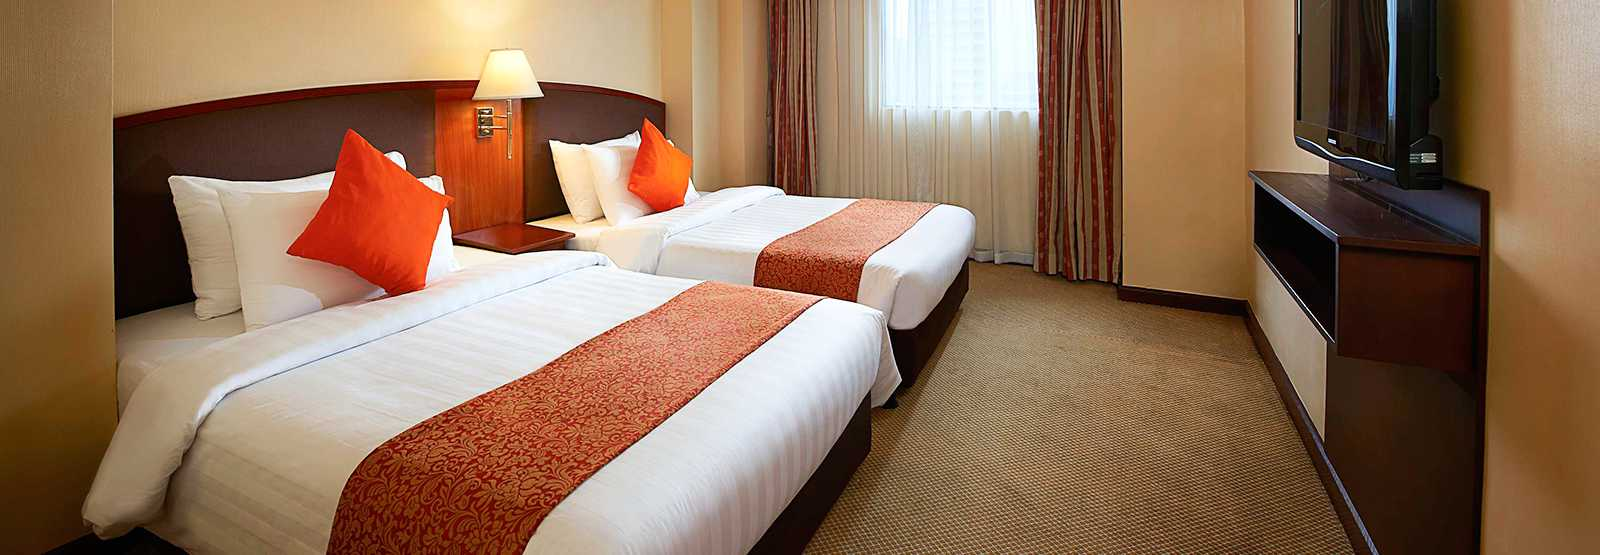 Family Room Hotel In Manila Two Bedroom Deluxe Berjaya